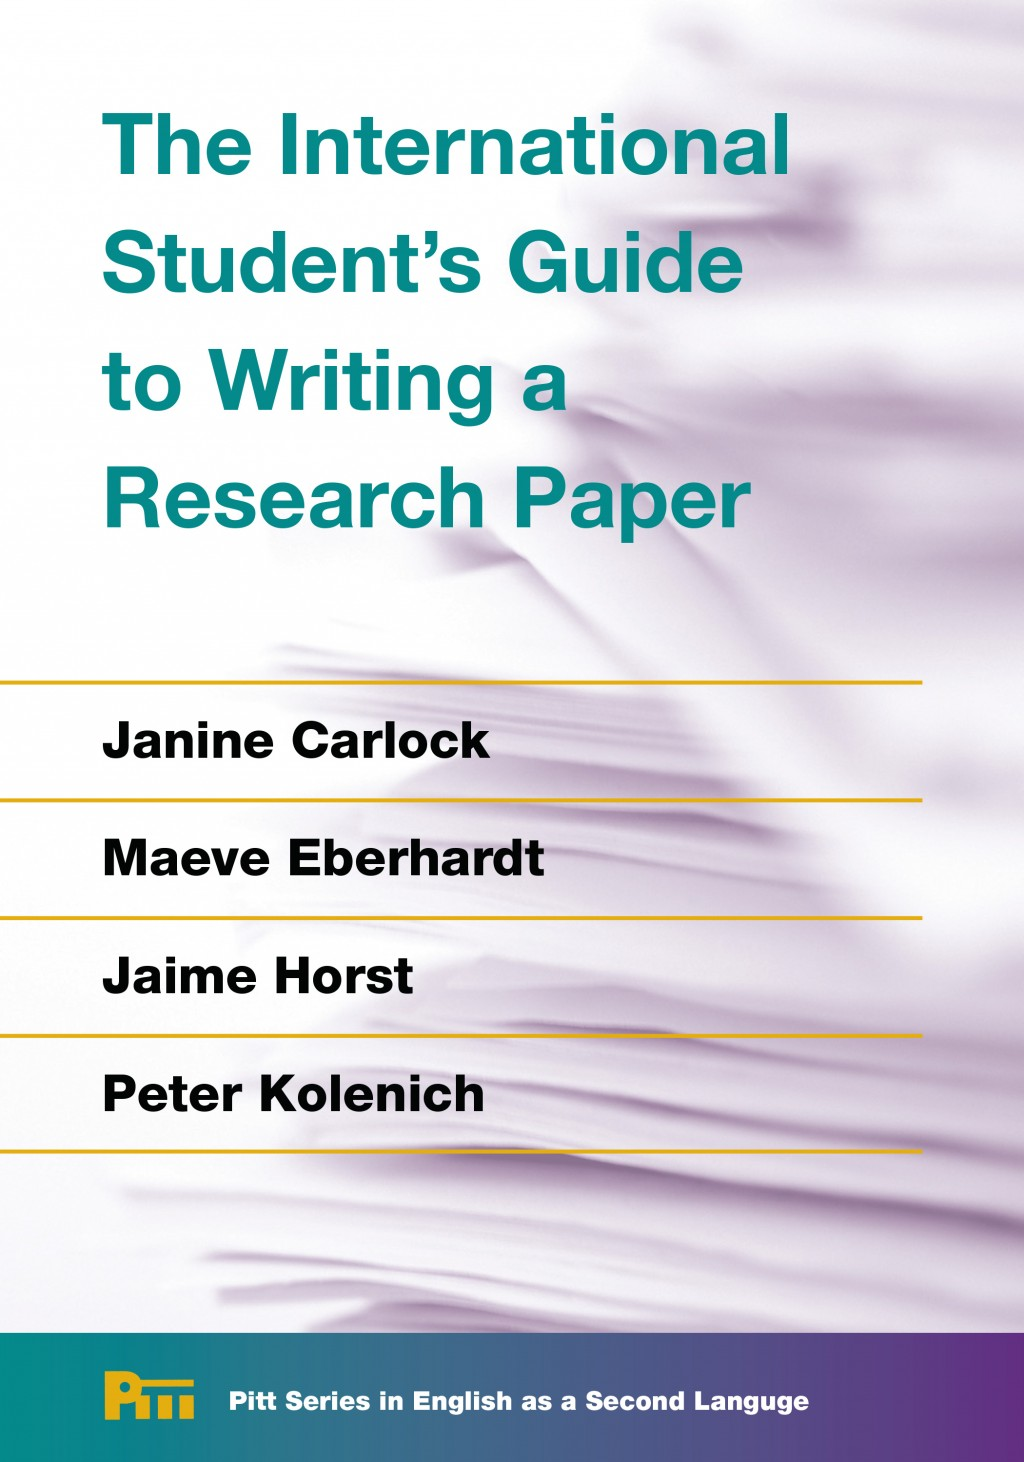 013 Writing The Research Paper Phenomenal Introduction Of A Ppt How To Write Outline Large